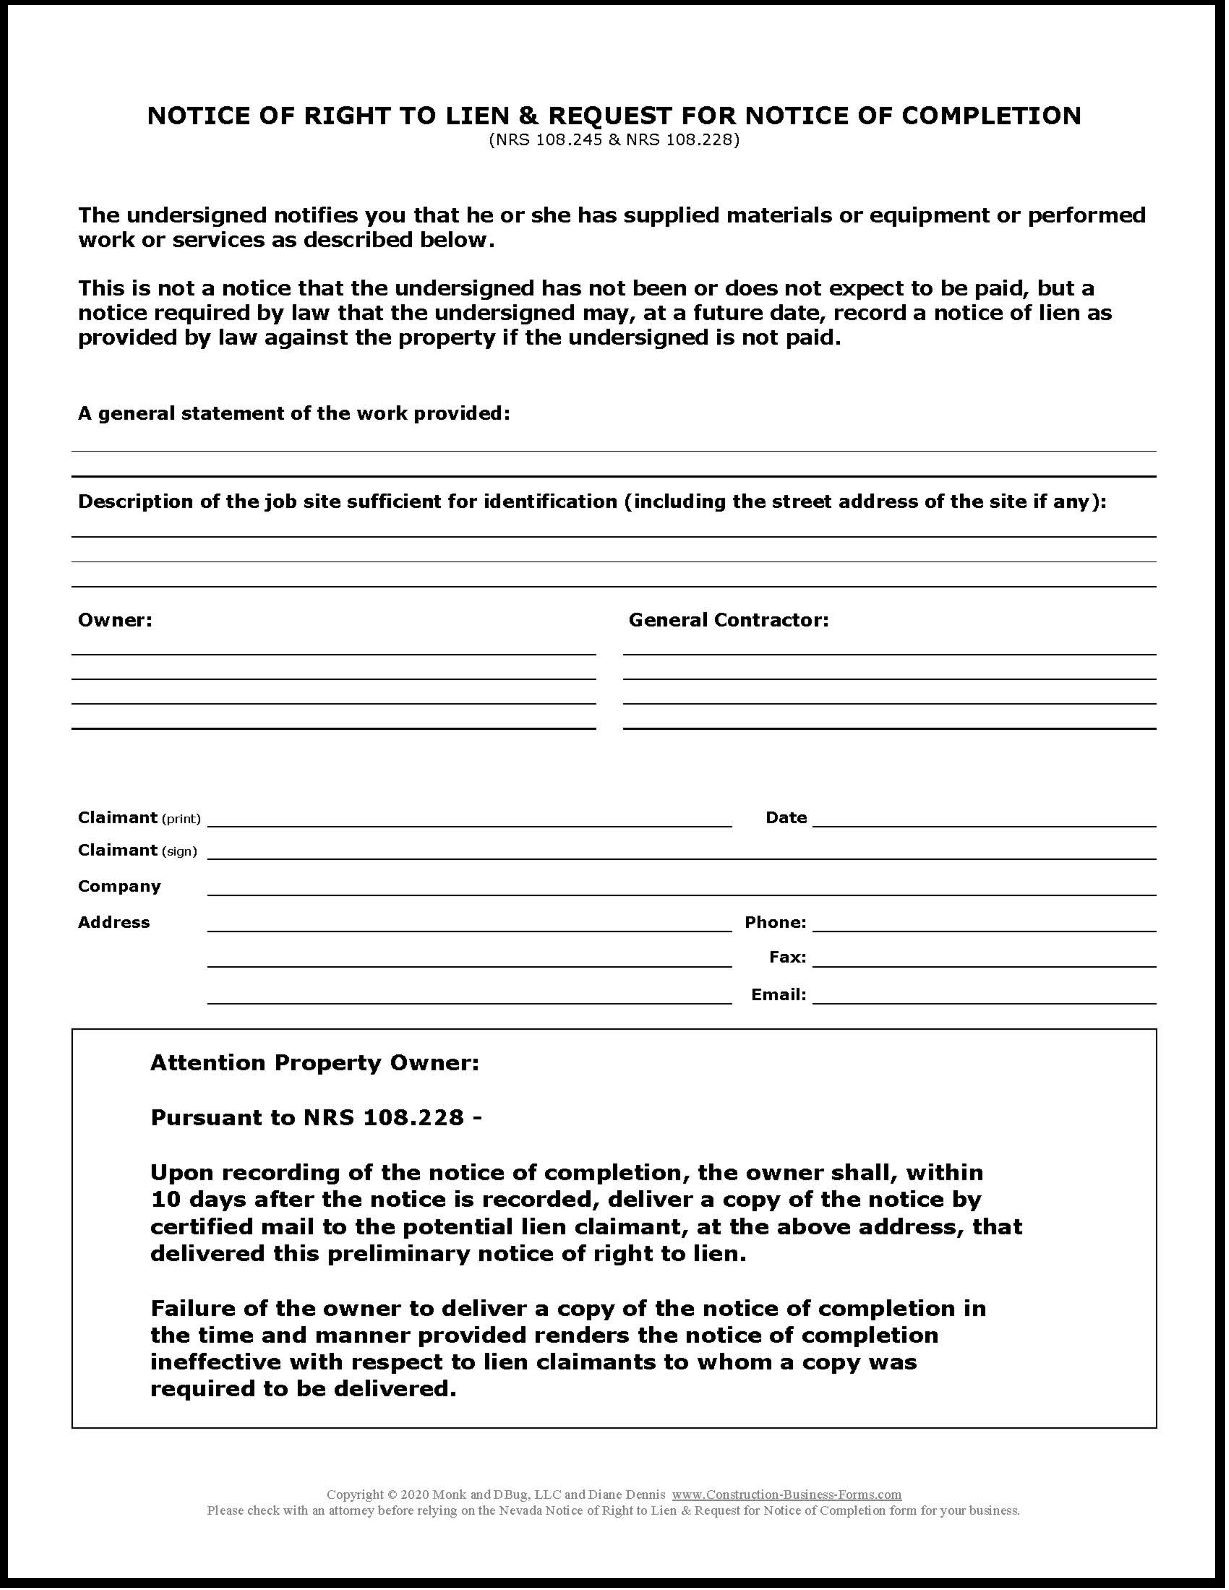 Image of, and link to, Nevada Notice of Right to Lien and Request for Notice of Completion.